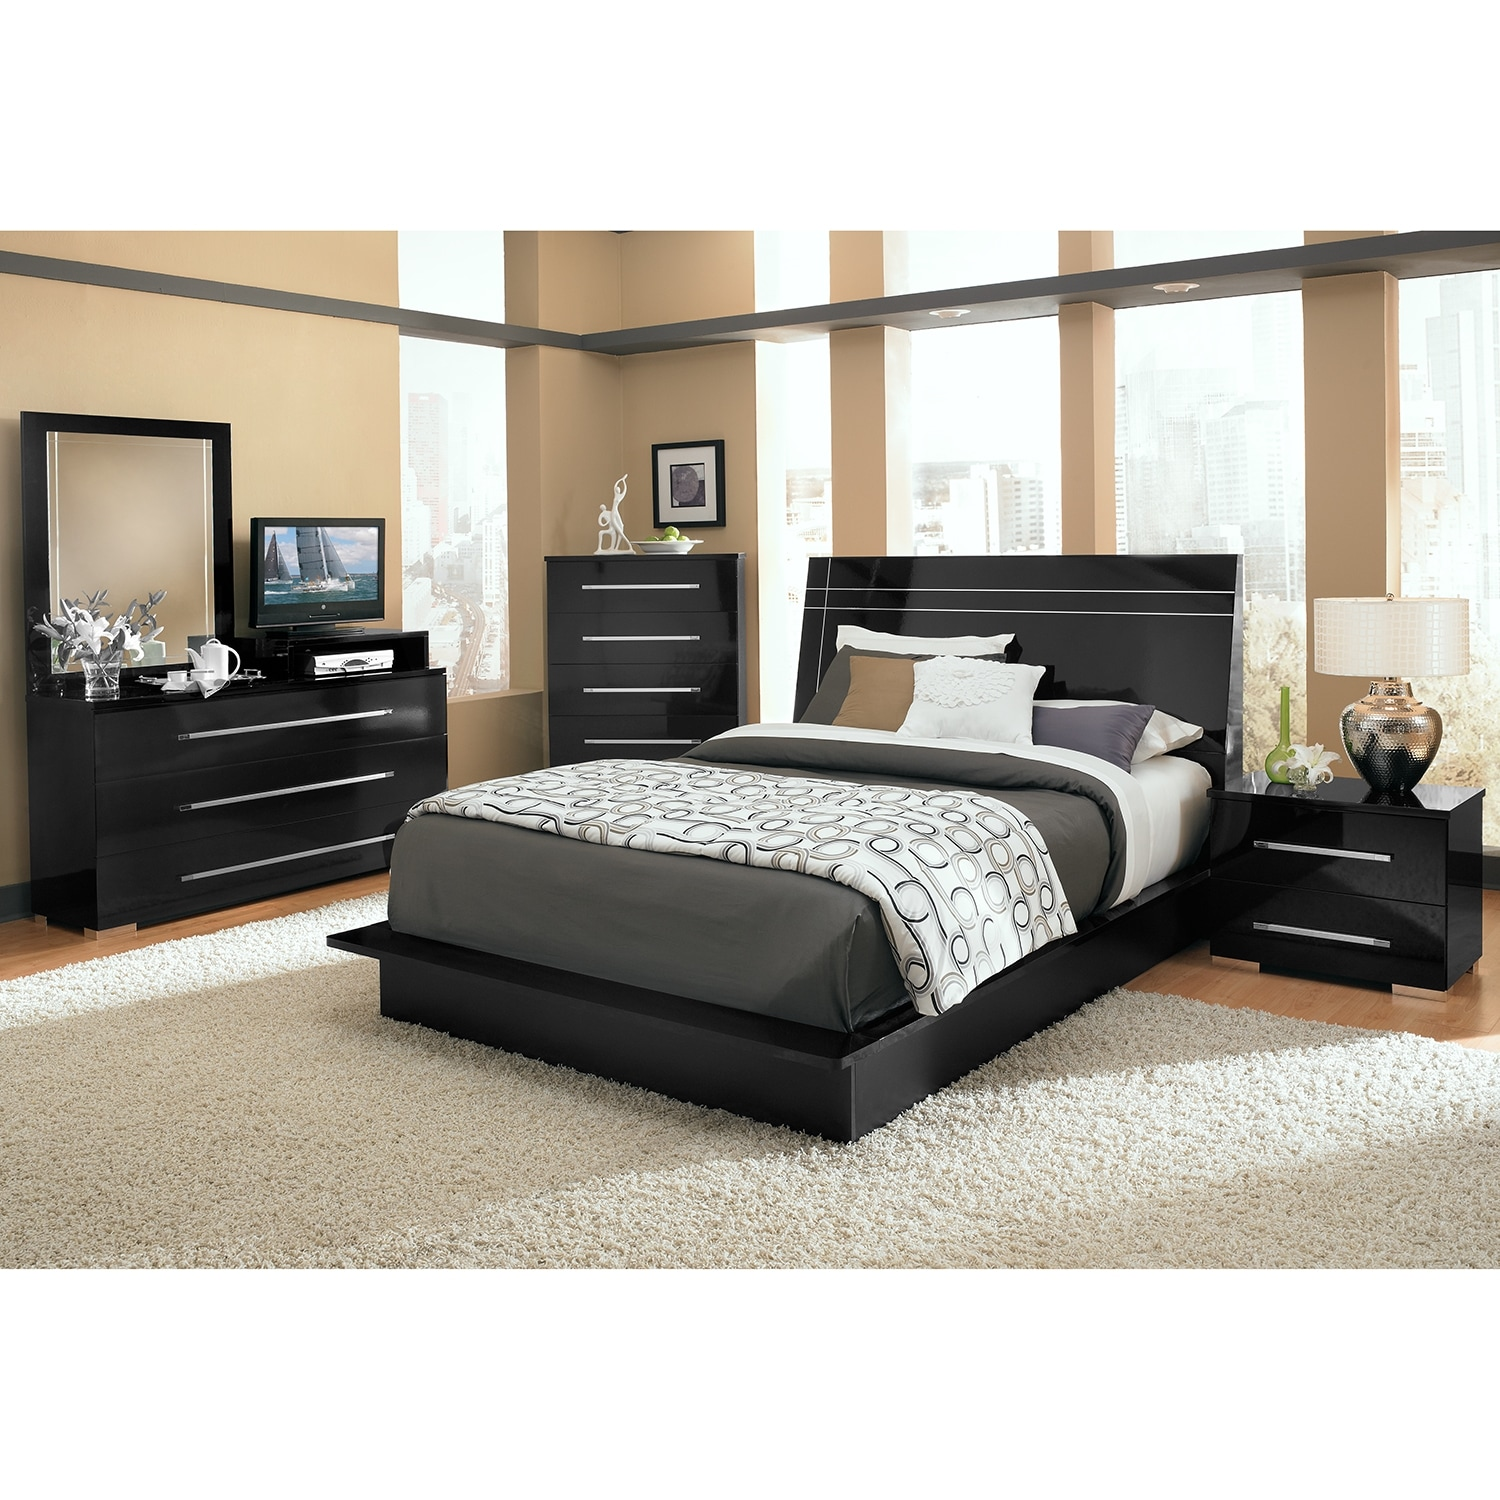 Dimora queen panel bed black value city furniture - Black queen bedroom furniture set ...